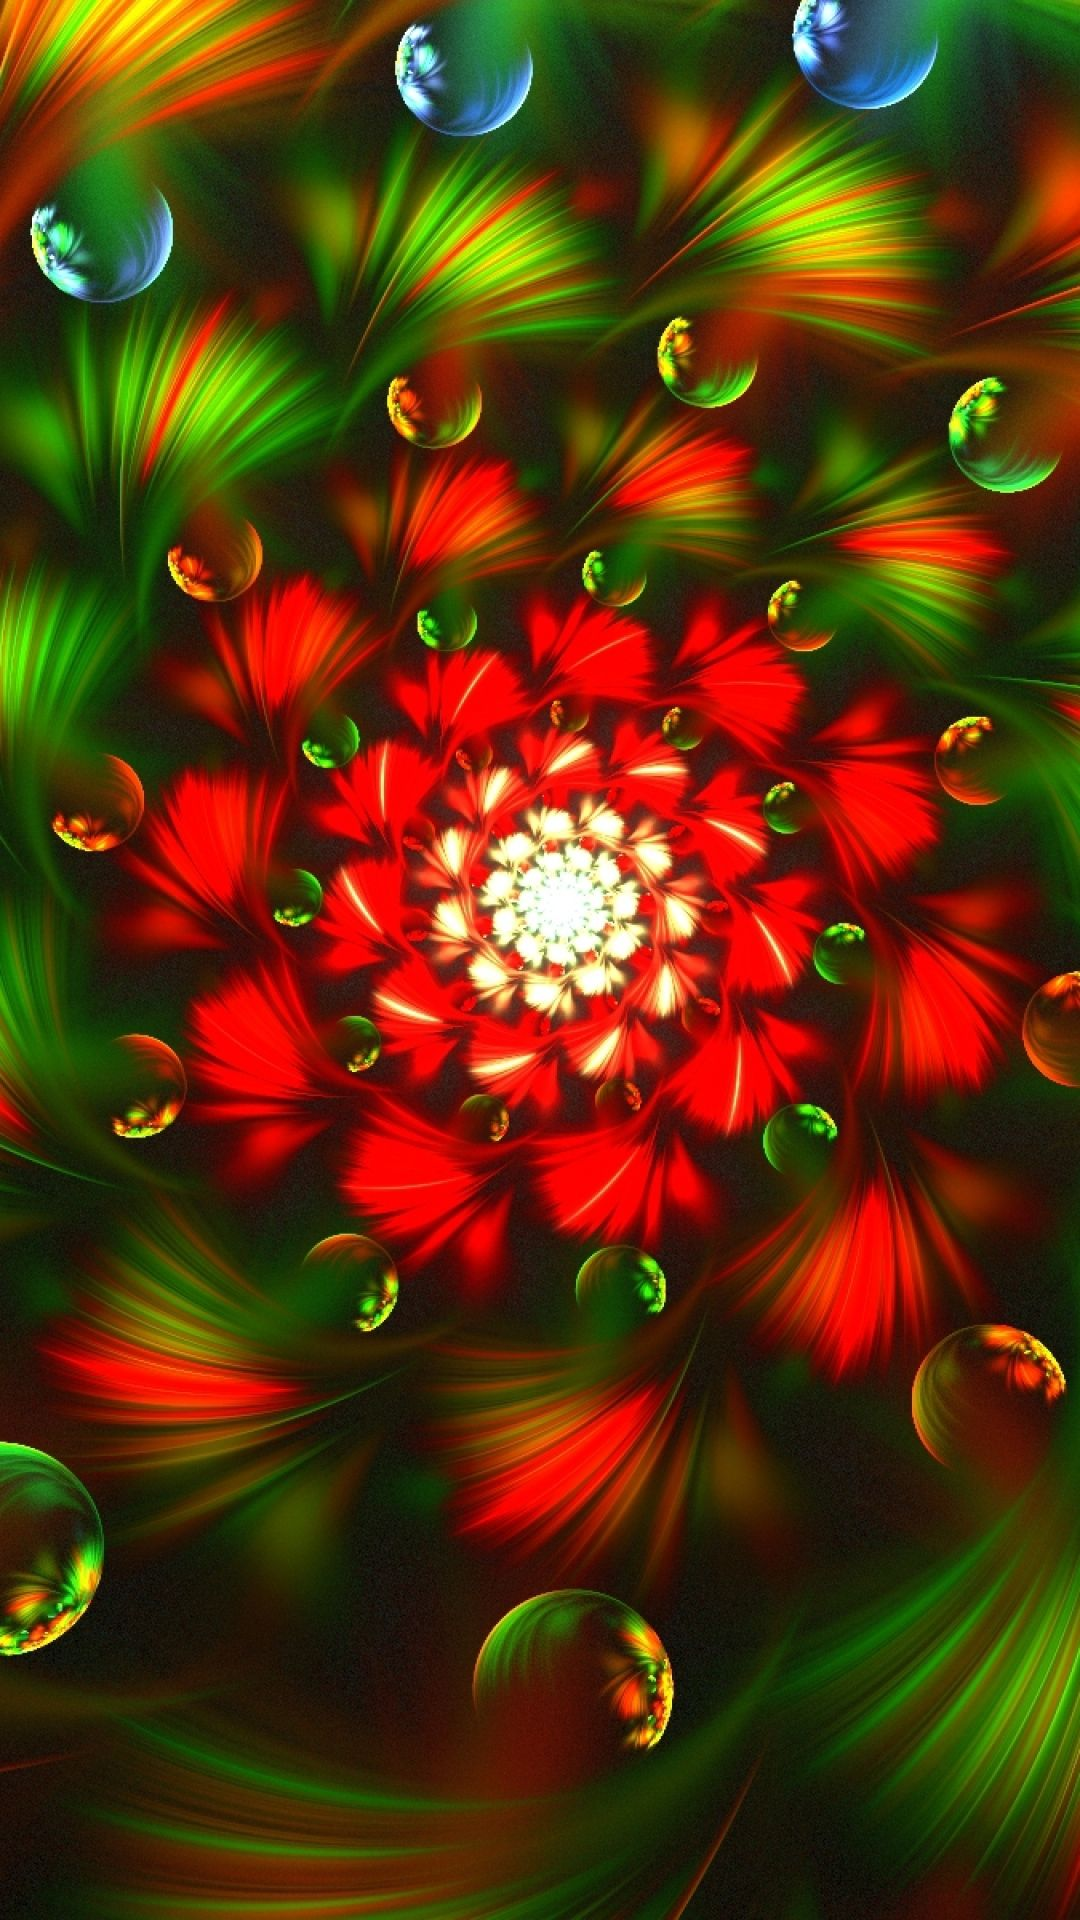 Download D Abstract Fractal Colorful Hd Wallpaper And Backgrounds For Mobi